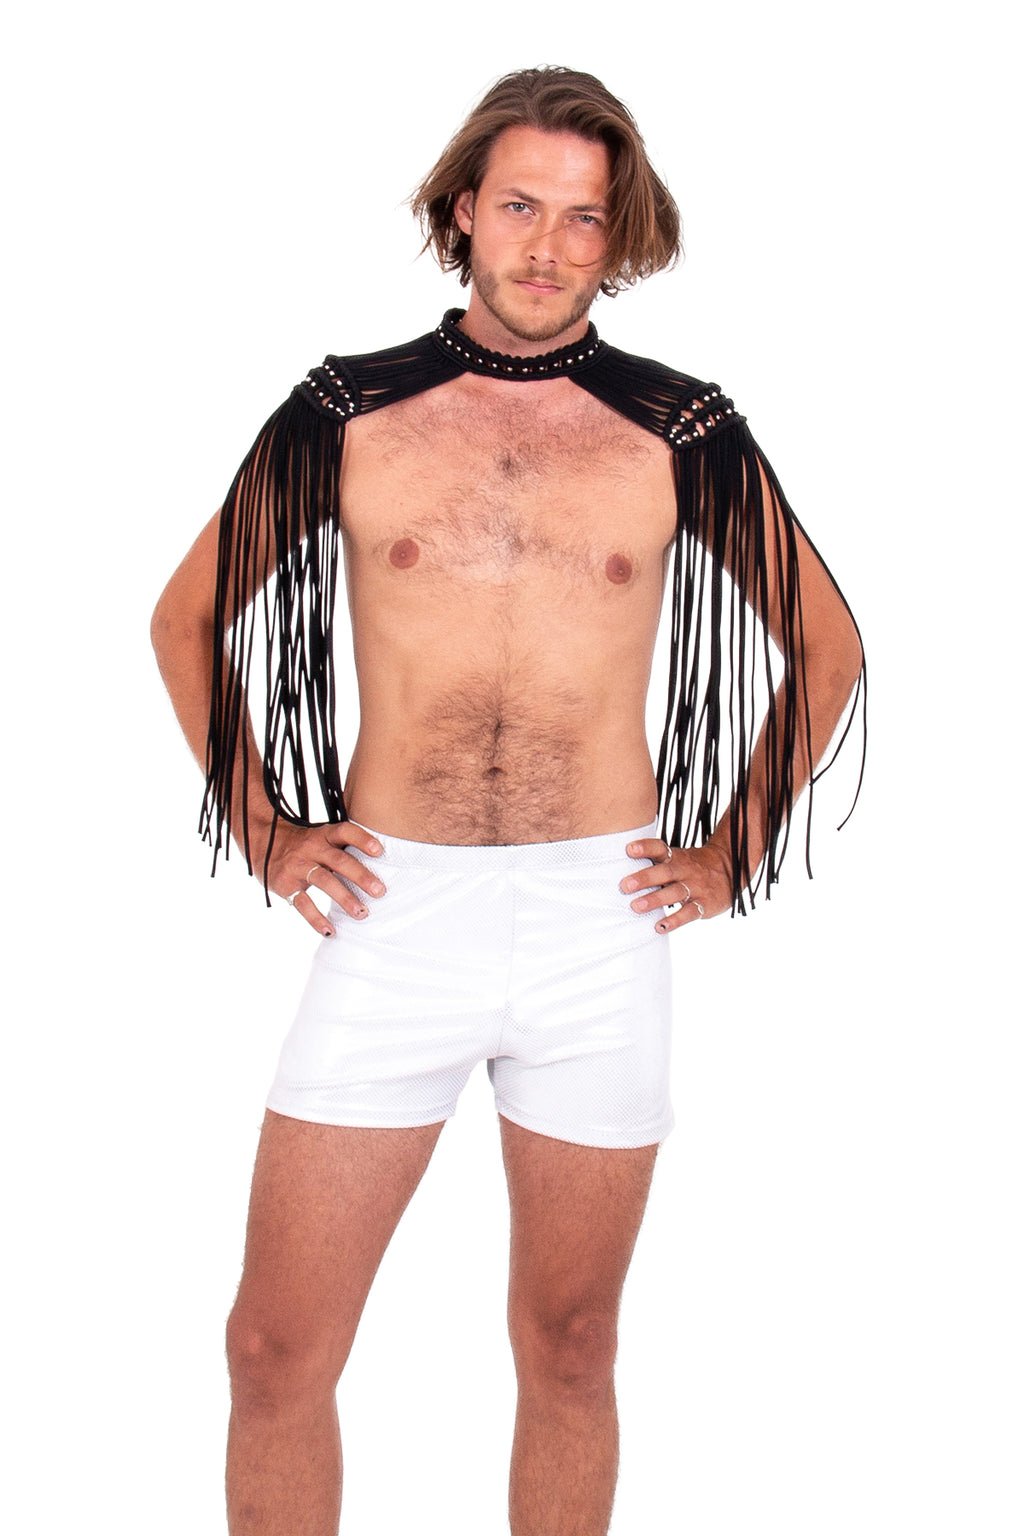 Sexy Burning Man epaulettes, mens festival costume accessory